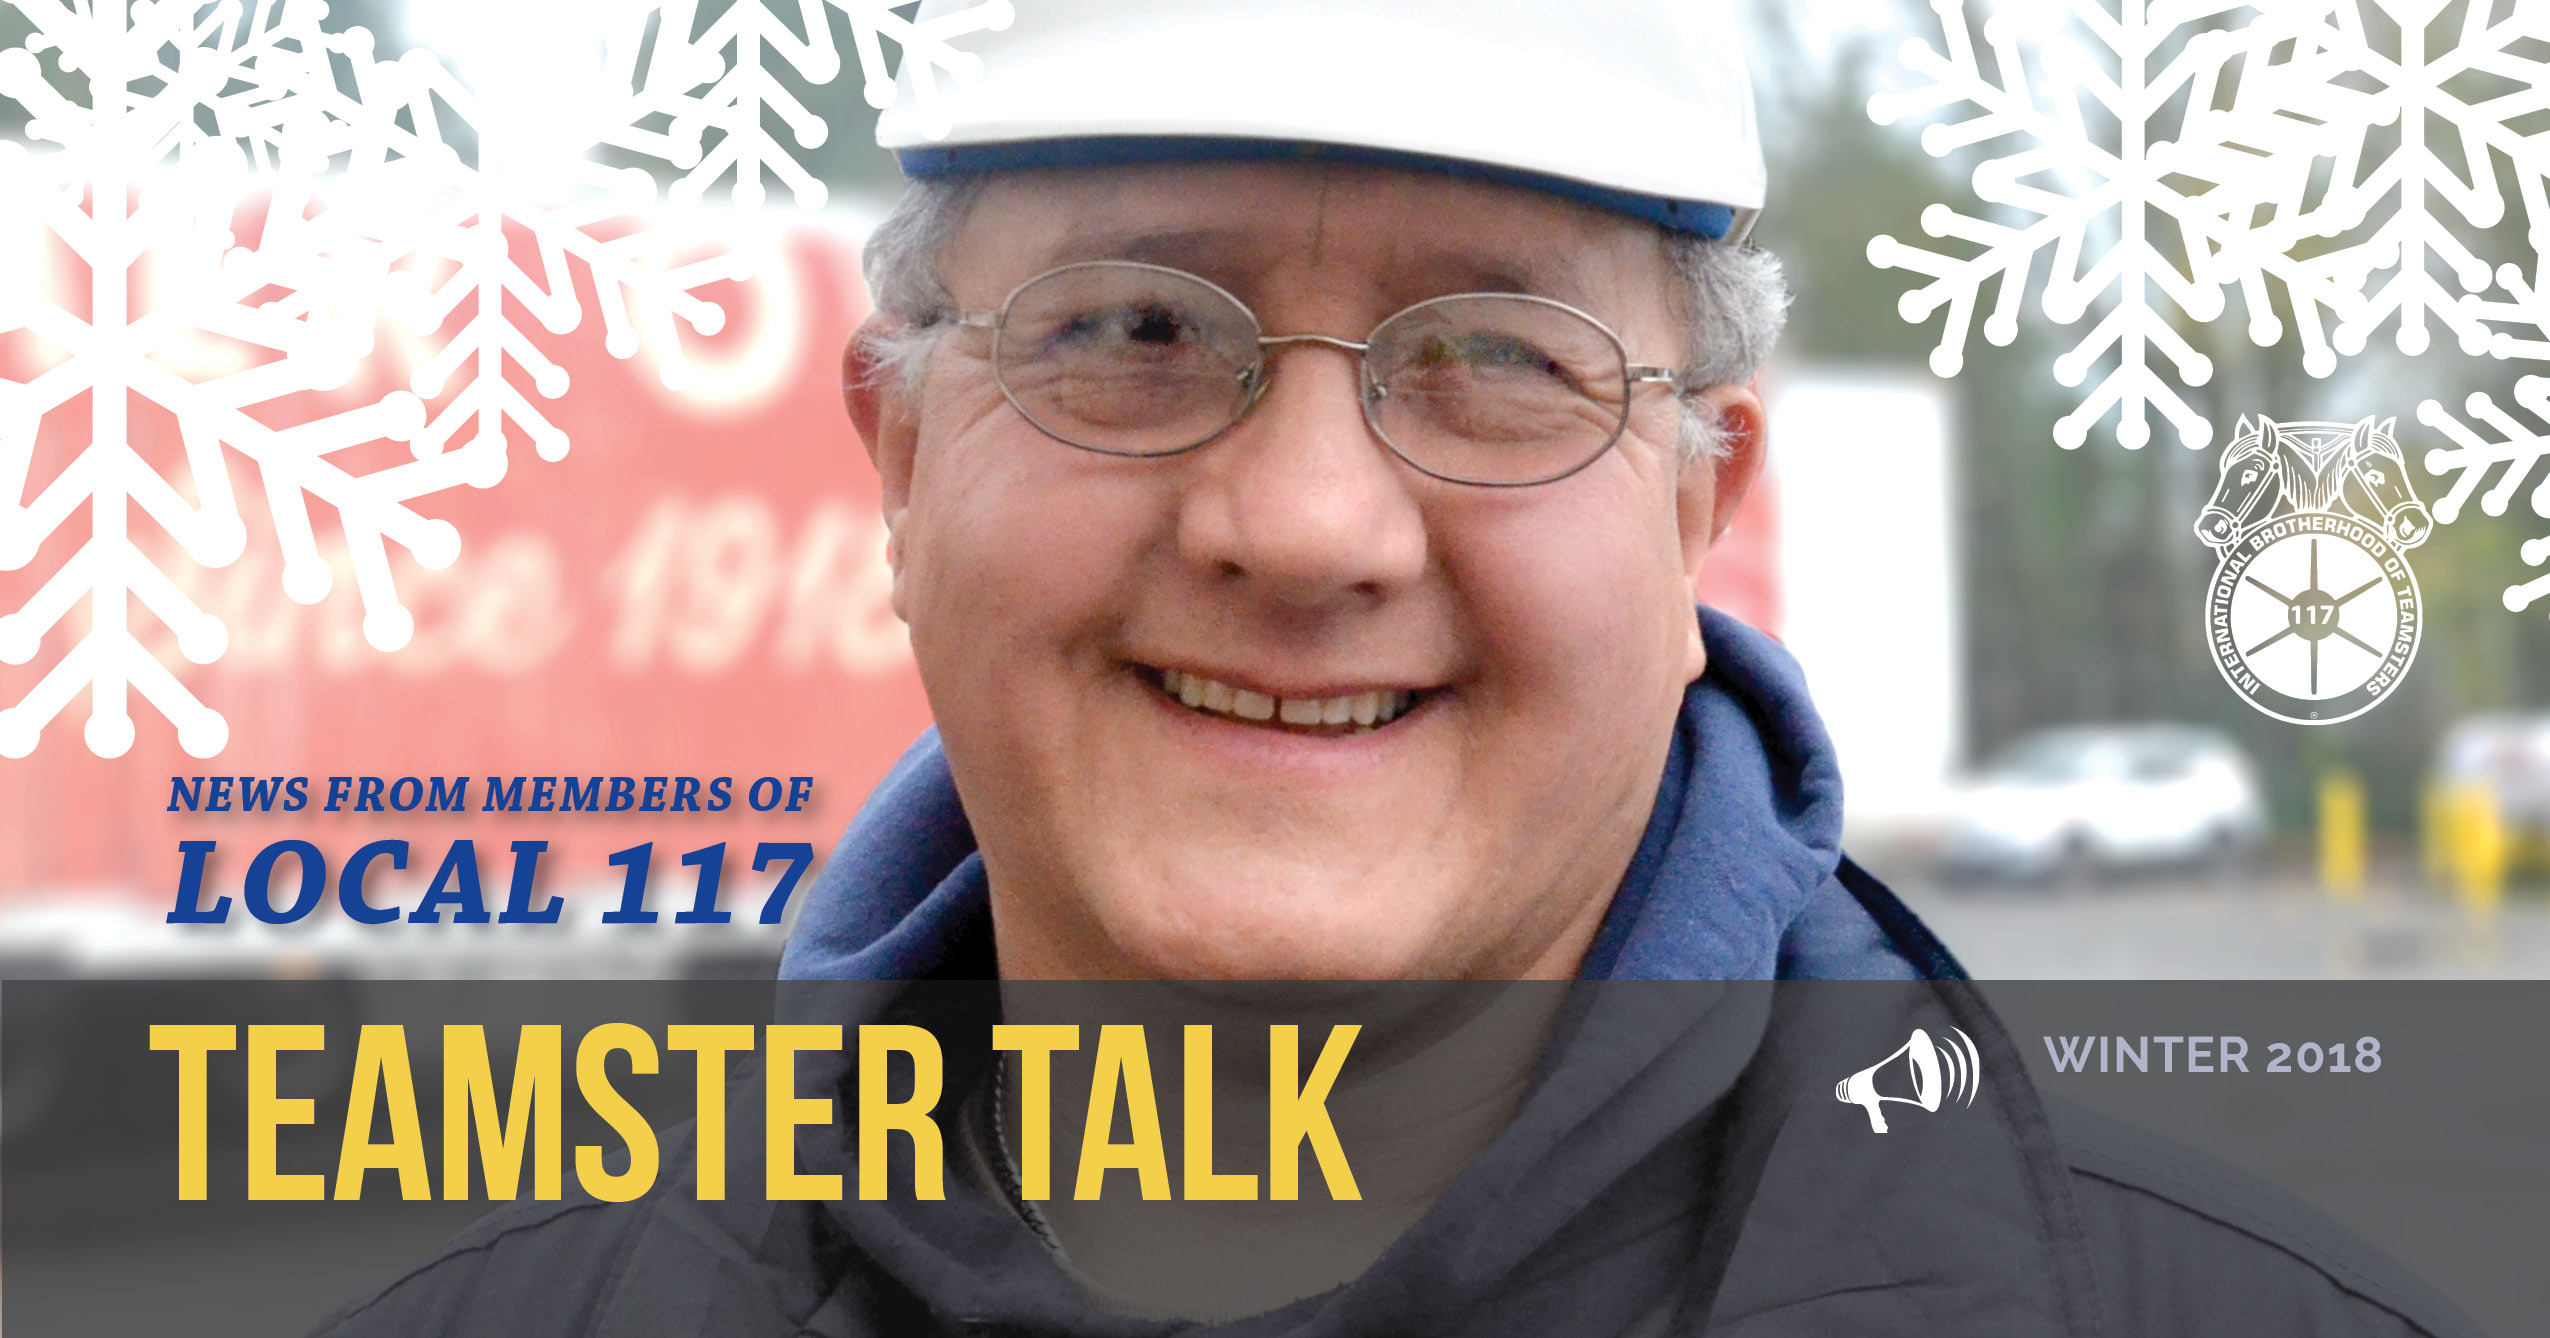 Teamster Talk: Power in Face of Open Shop Image